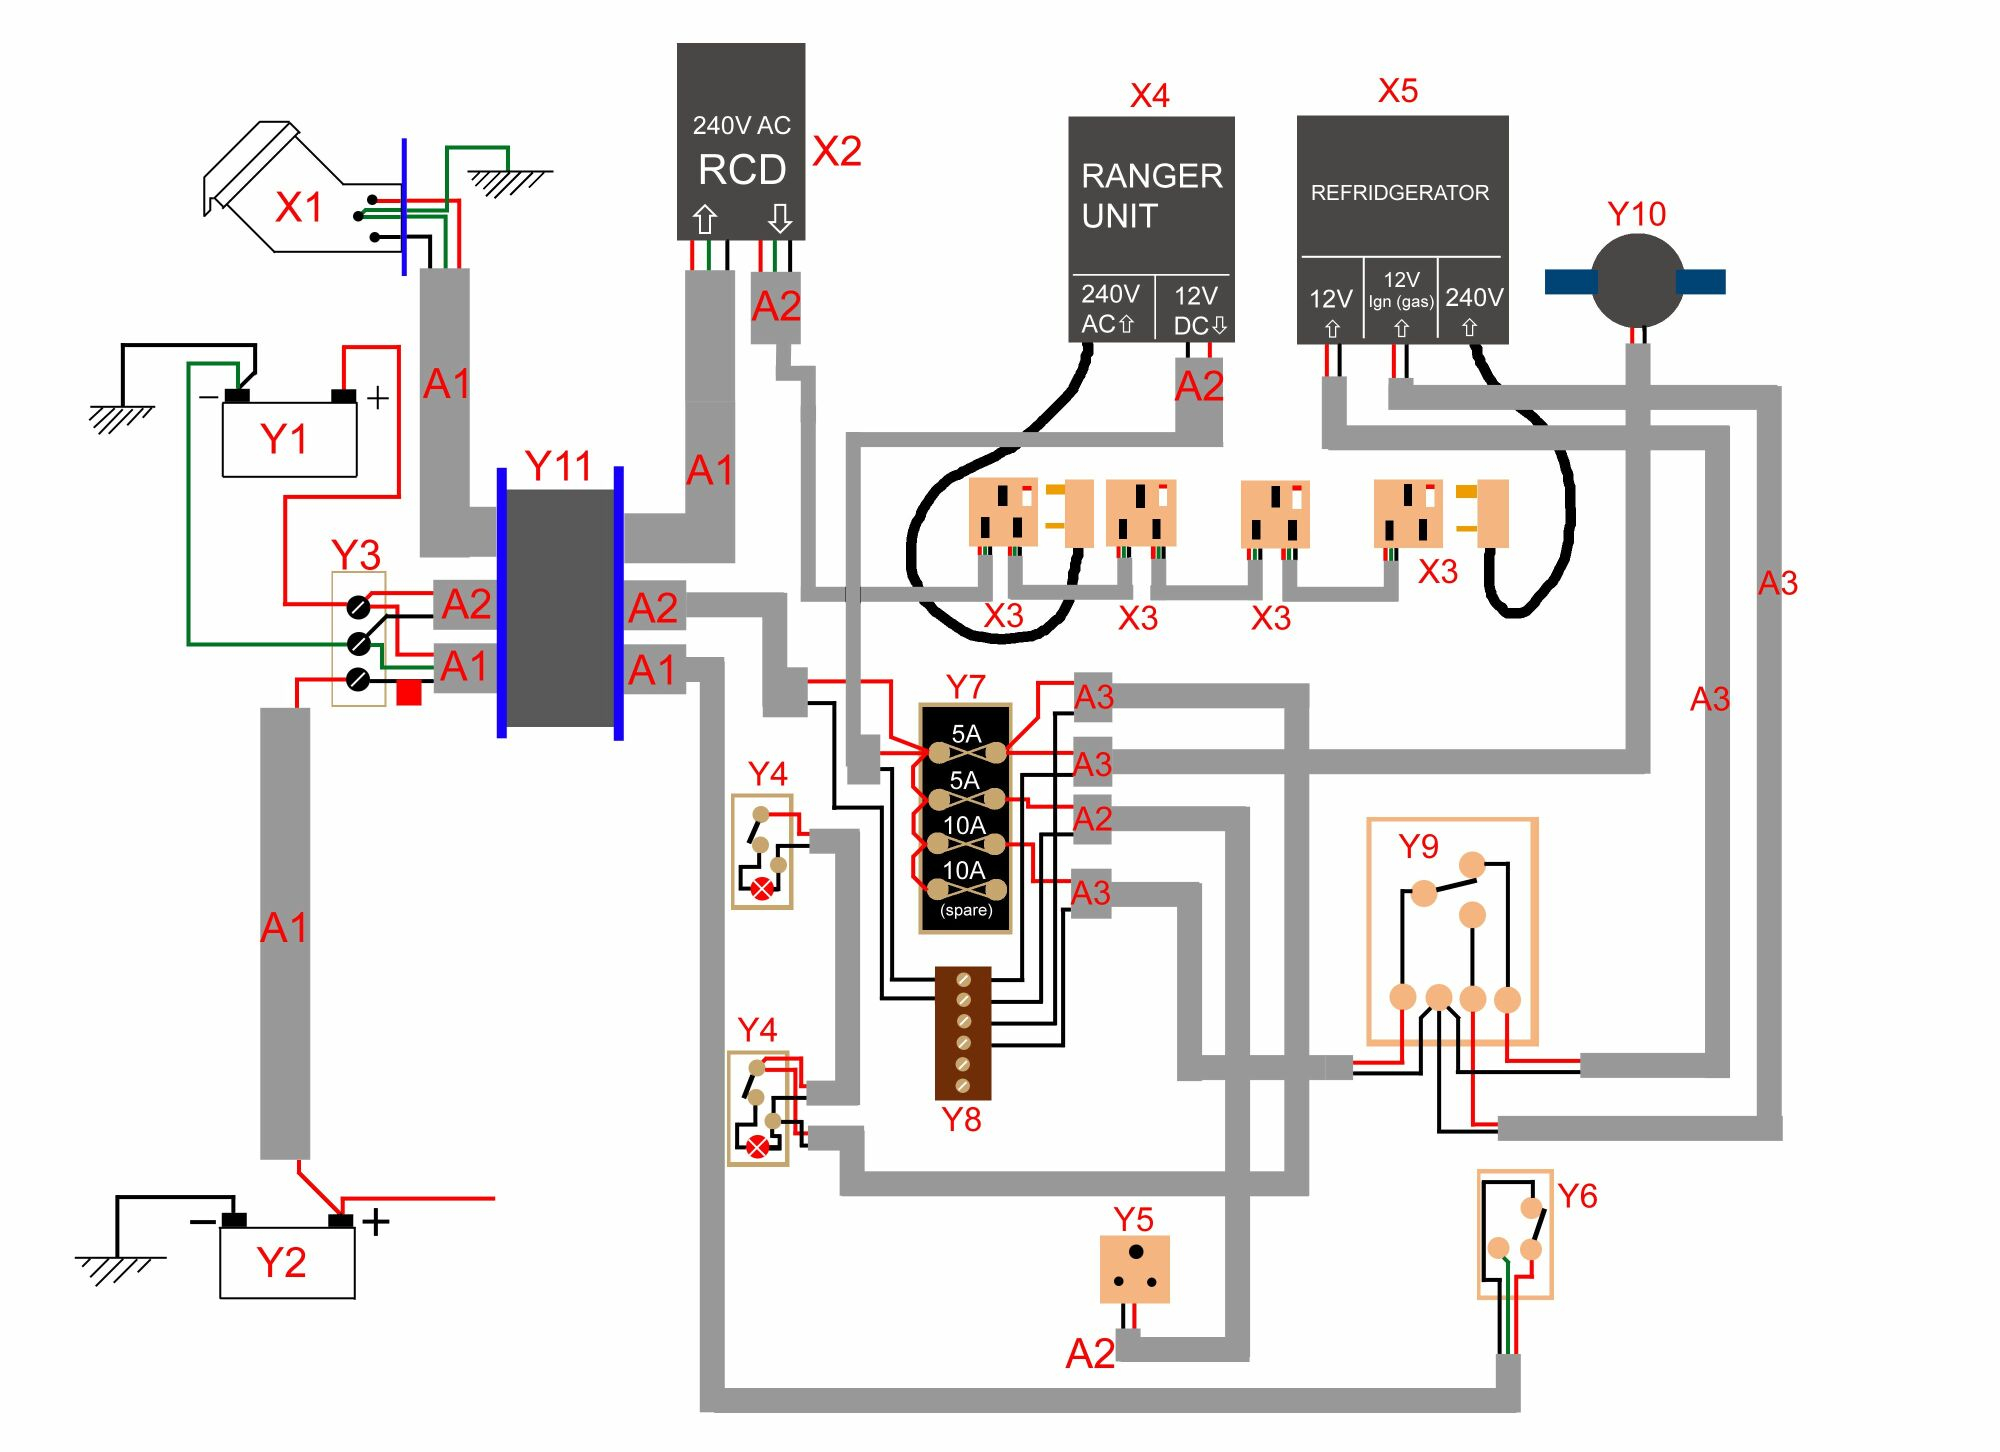 Dometic Thermostat Wiring Diagram 7 Wire | Wiring Diagram - Dometic Thermostat Wiring Diagram